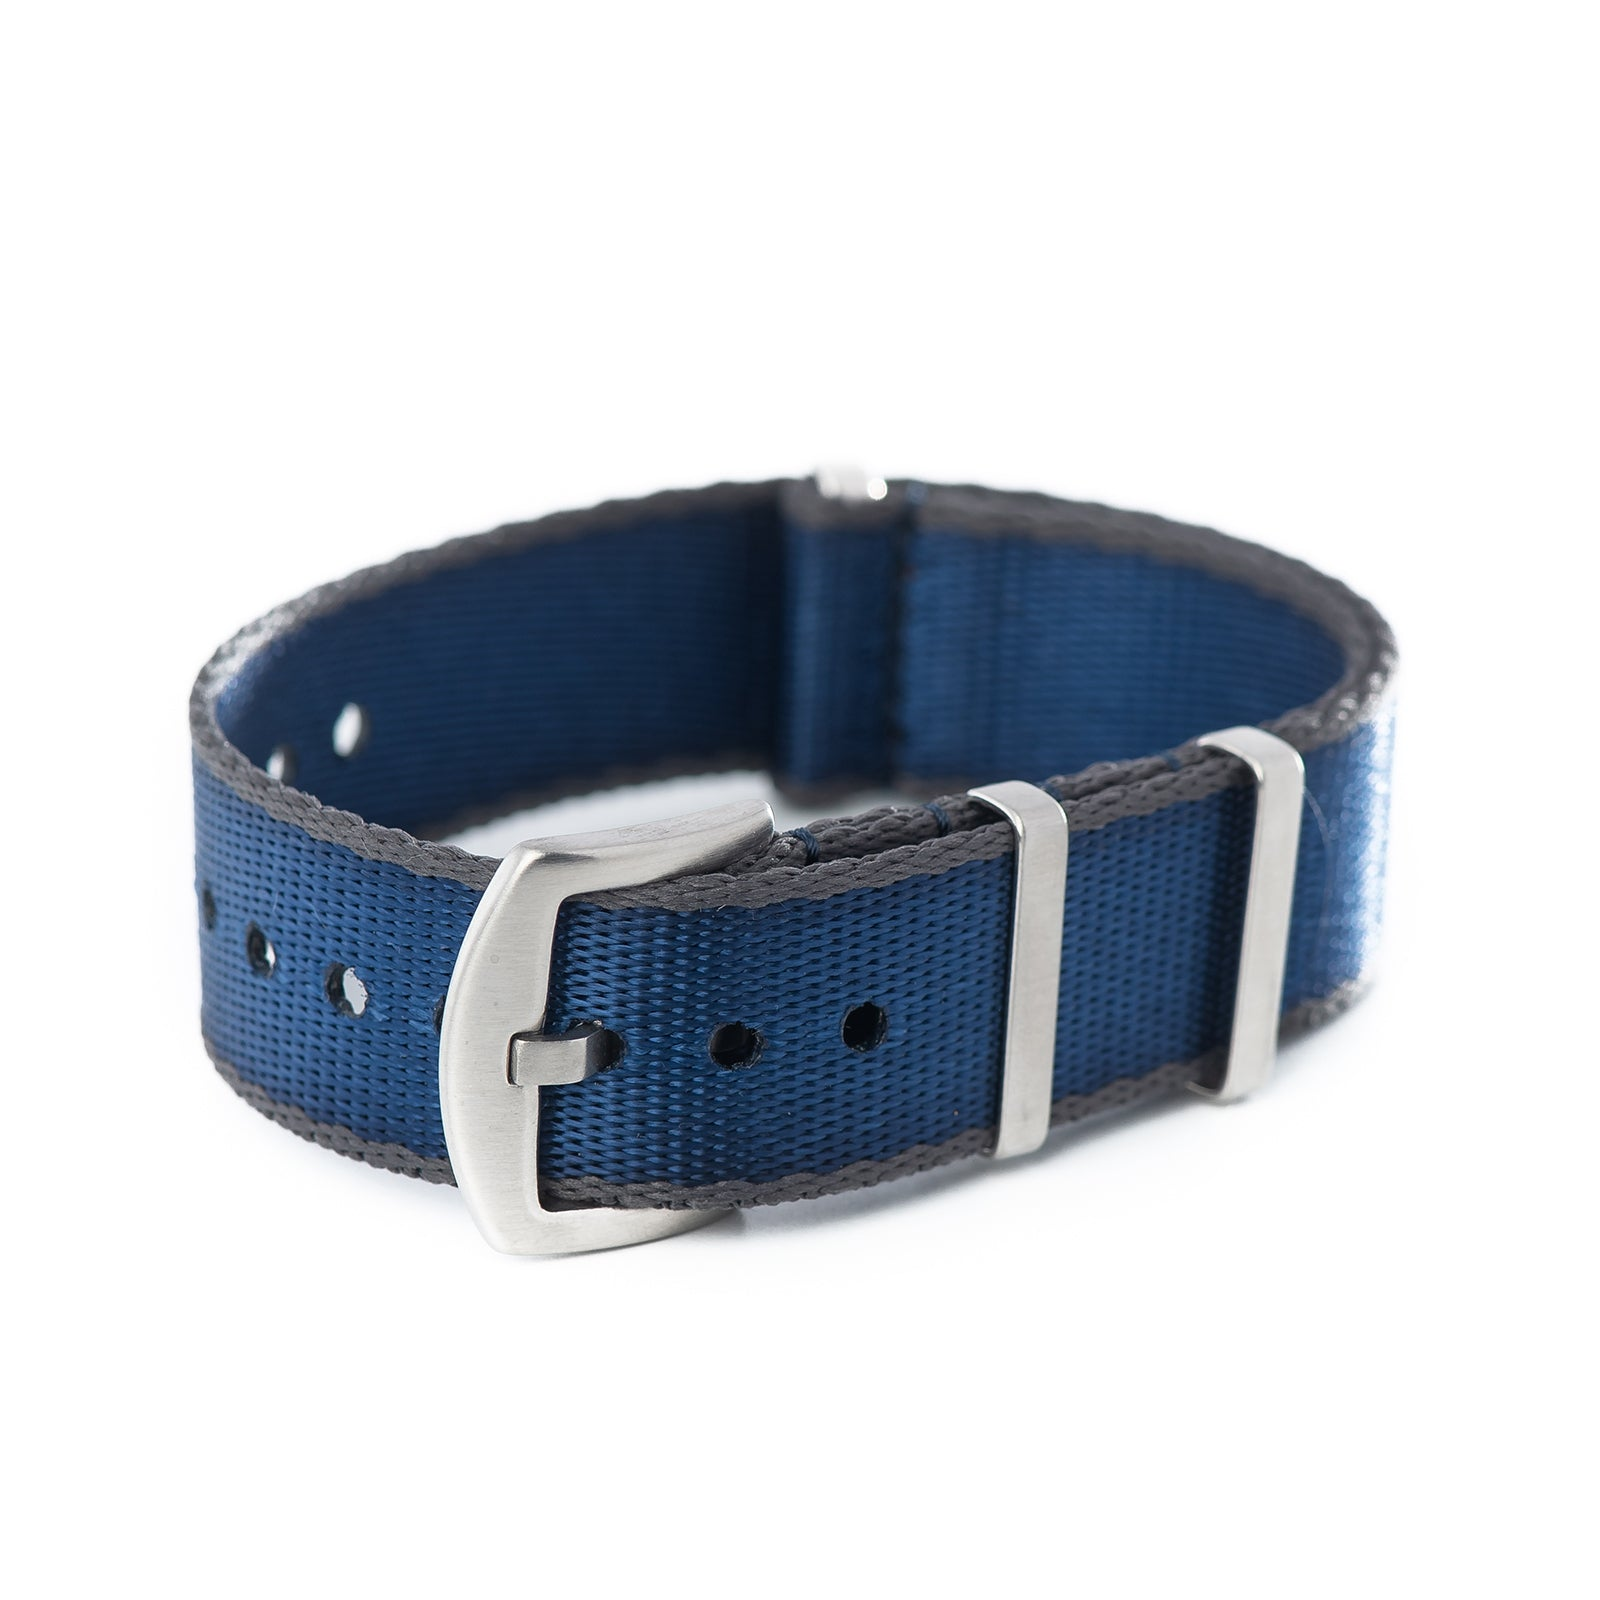 20mm 22mm Premium Seat Belt Nylon NATO Watch Strap - Navy Grey